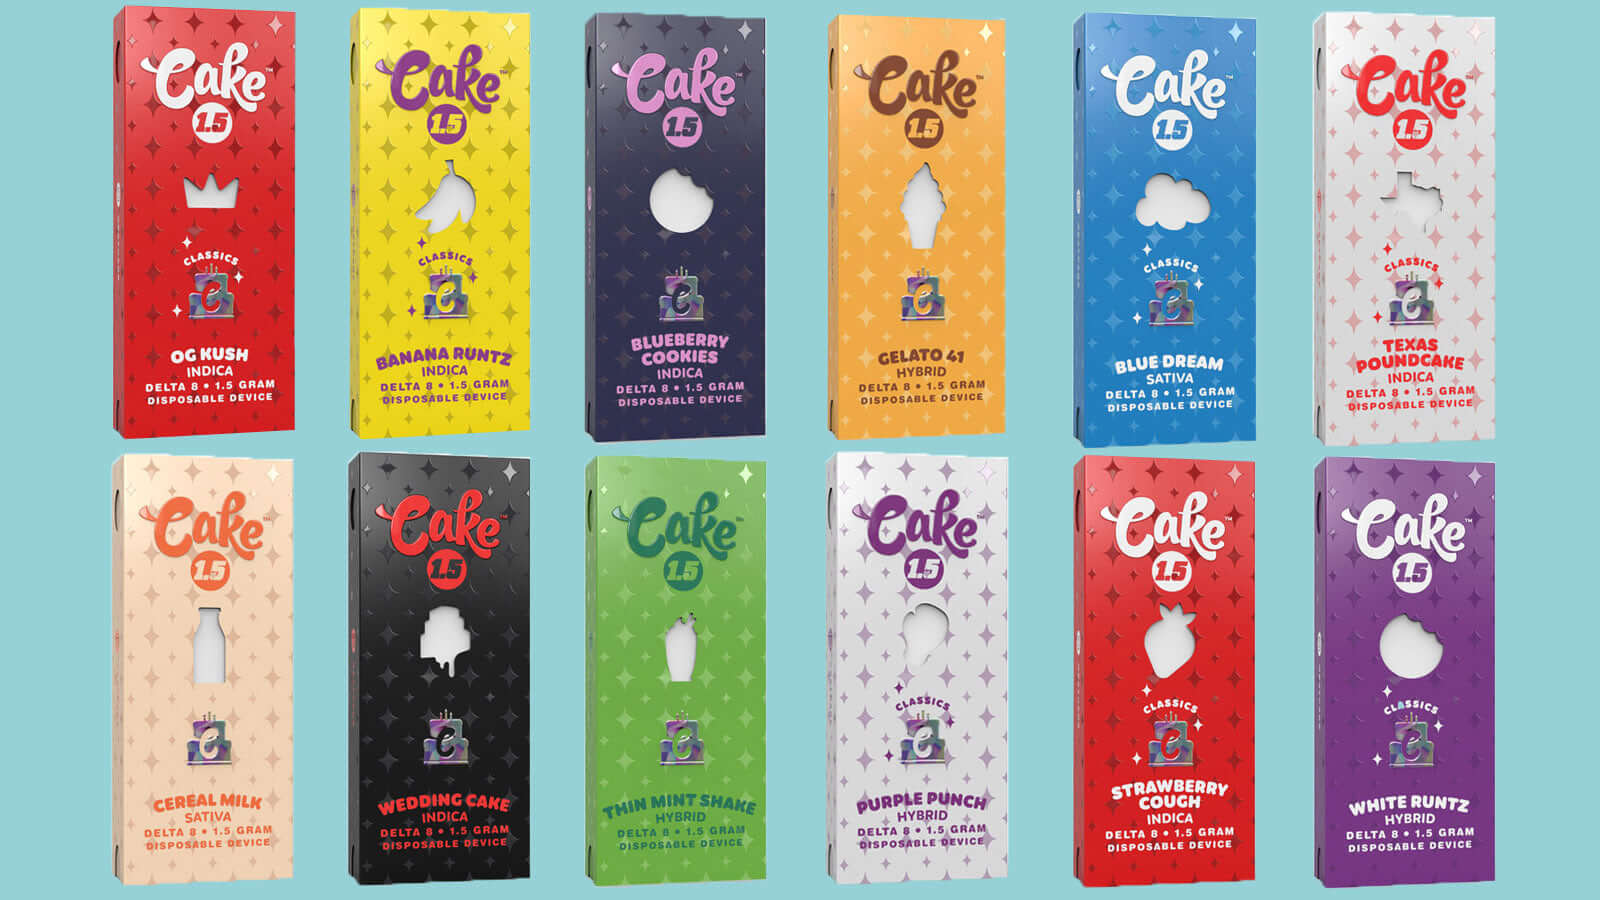 Cake Delta 8: First Rechargeable Disposable Carts